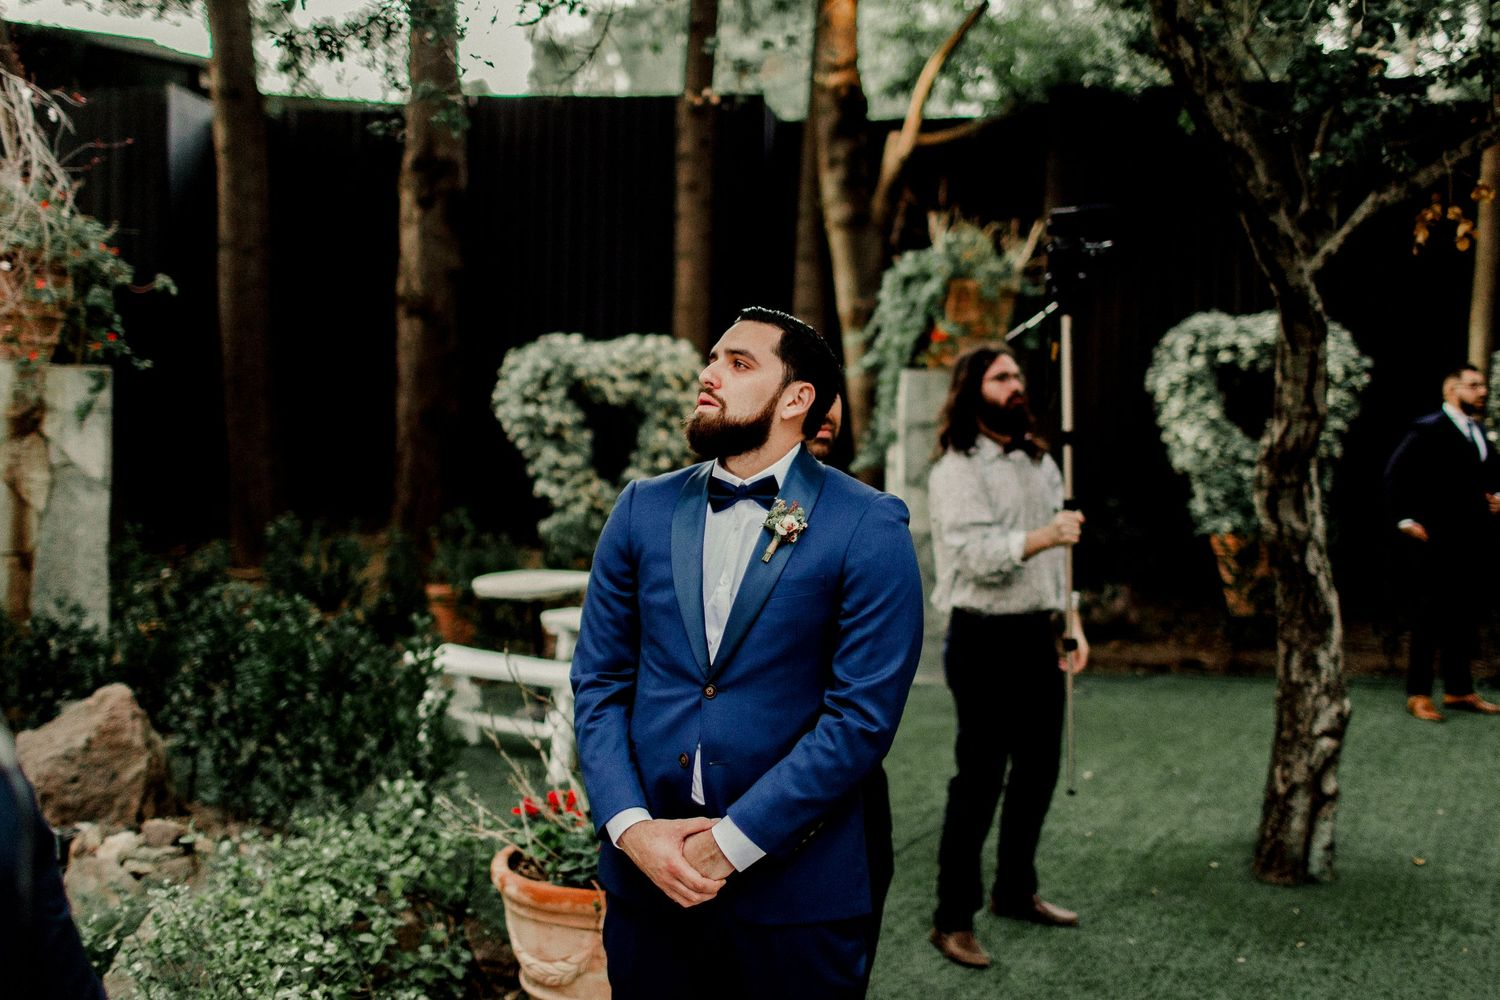 groom holding back tears while preparing for bride to walk down aisle